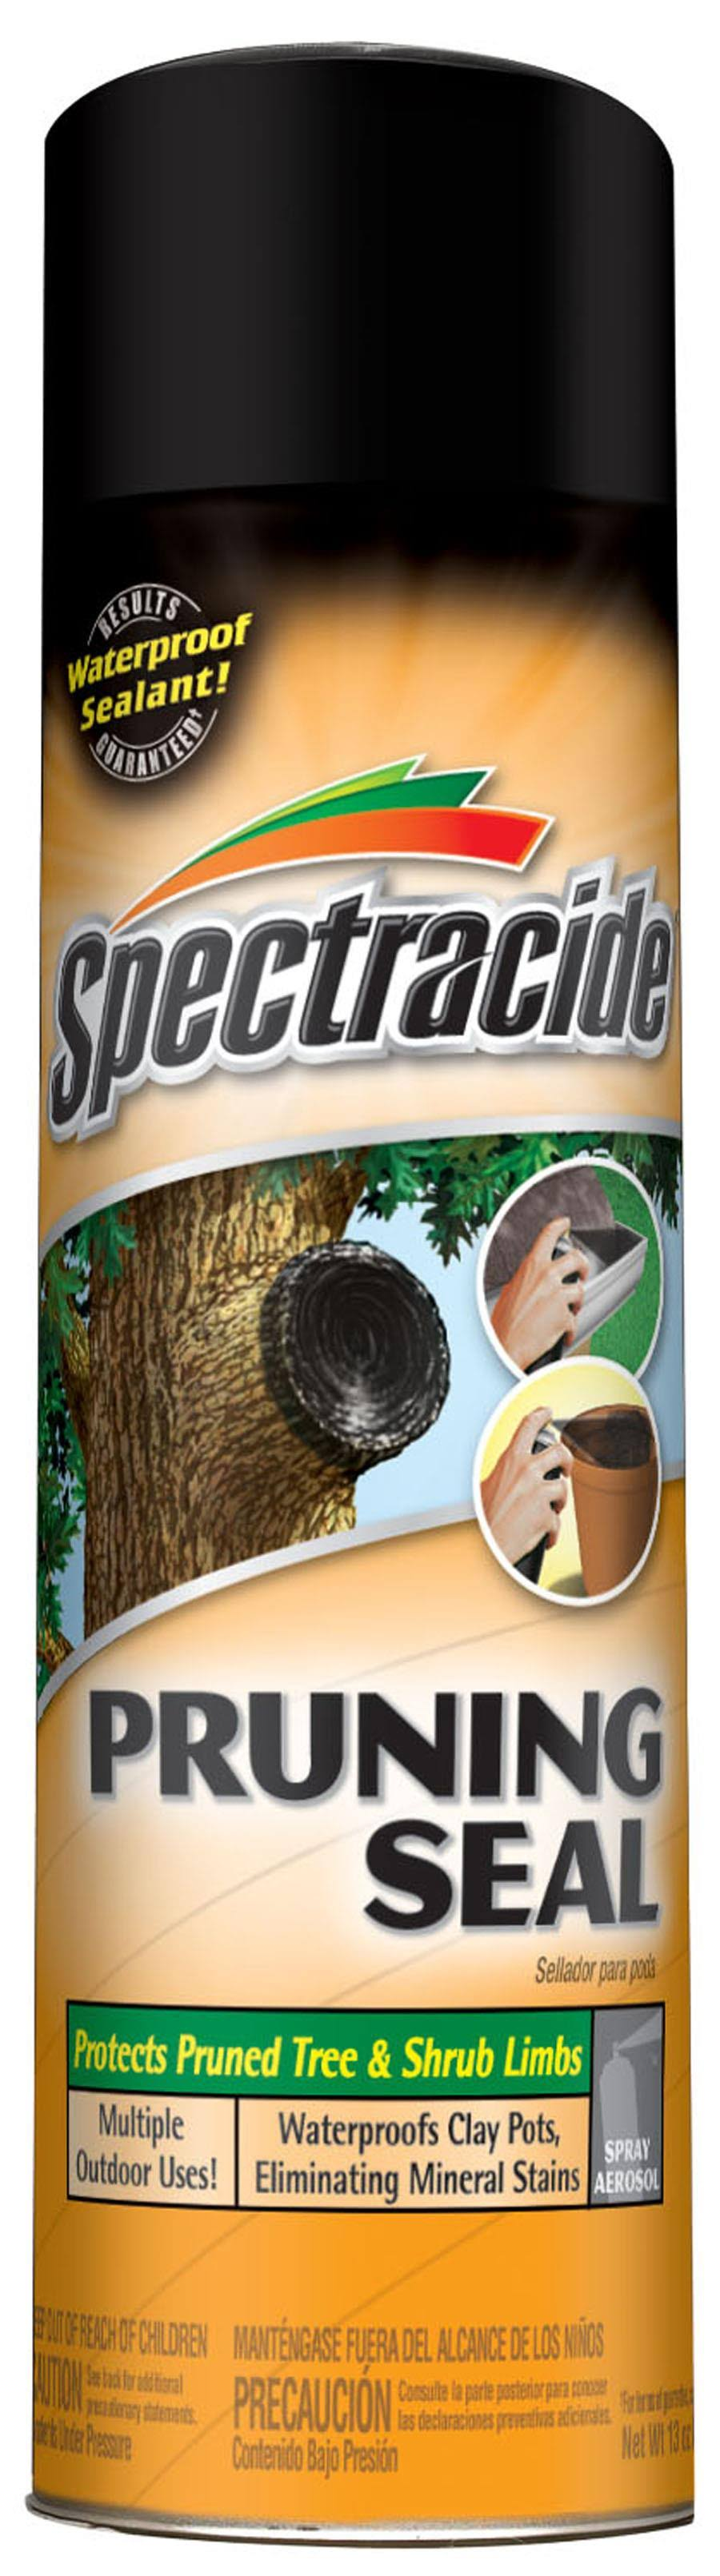 Spectracide Pruning Seal Aerosol - 13oz